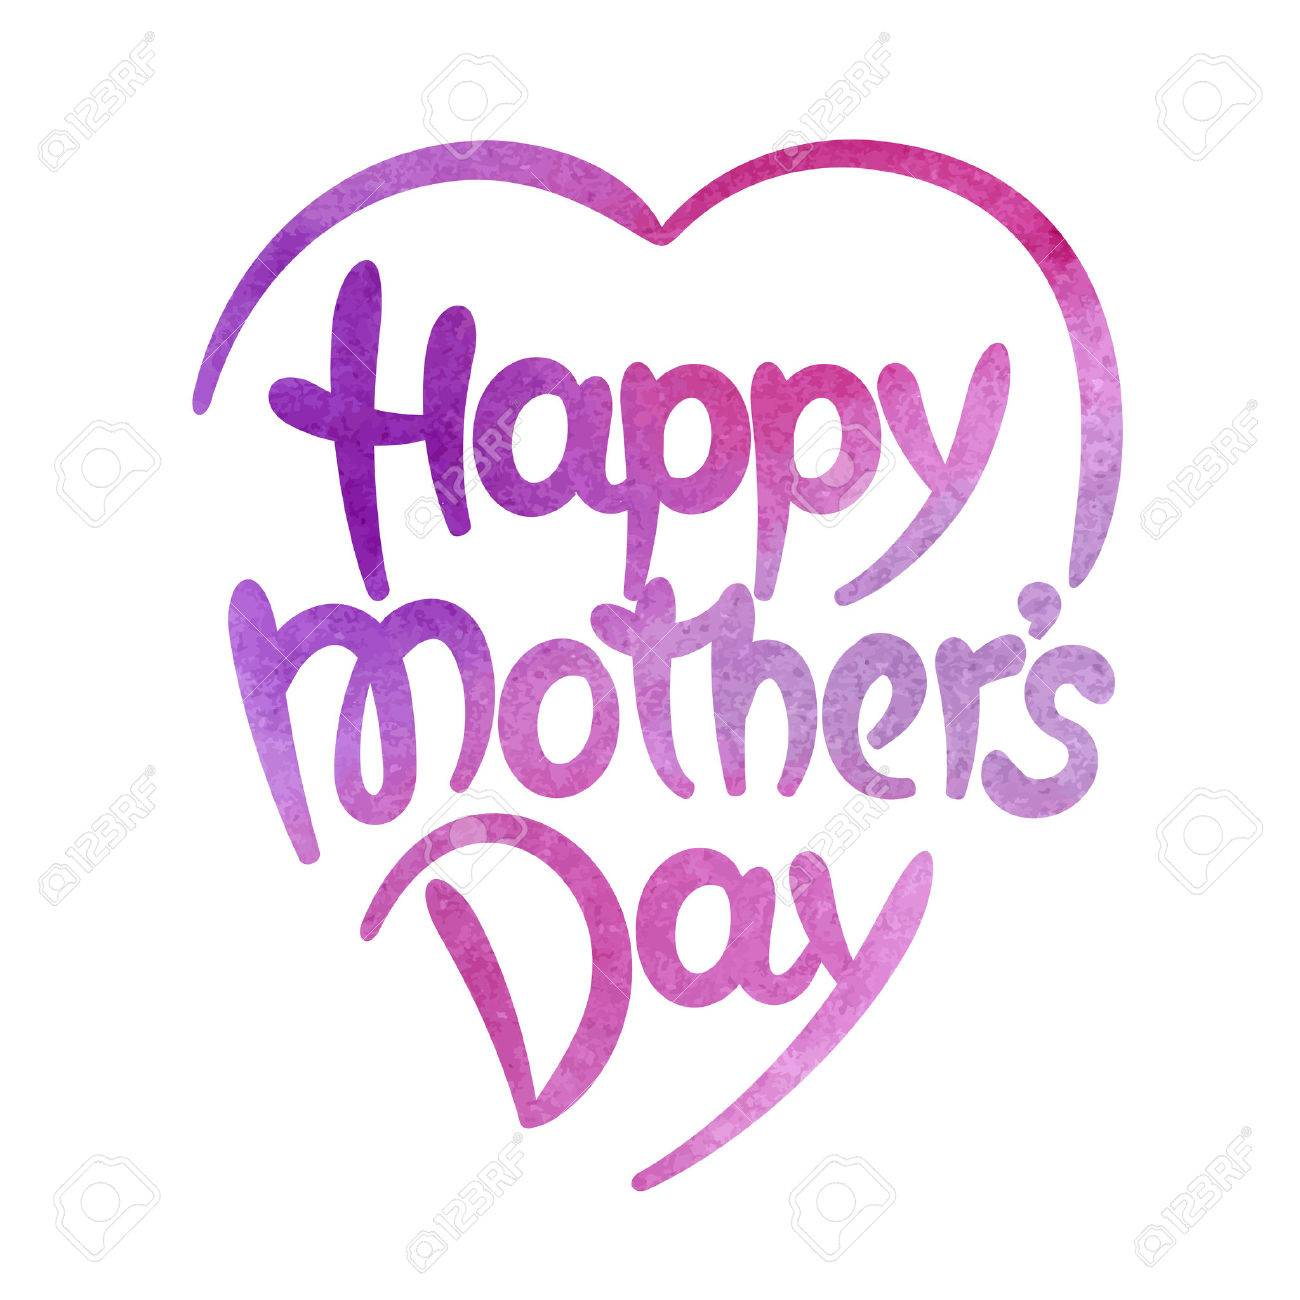 Happy mothers day hand-drawn lettering. Template for greeting card - 38747813